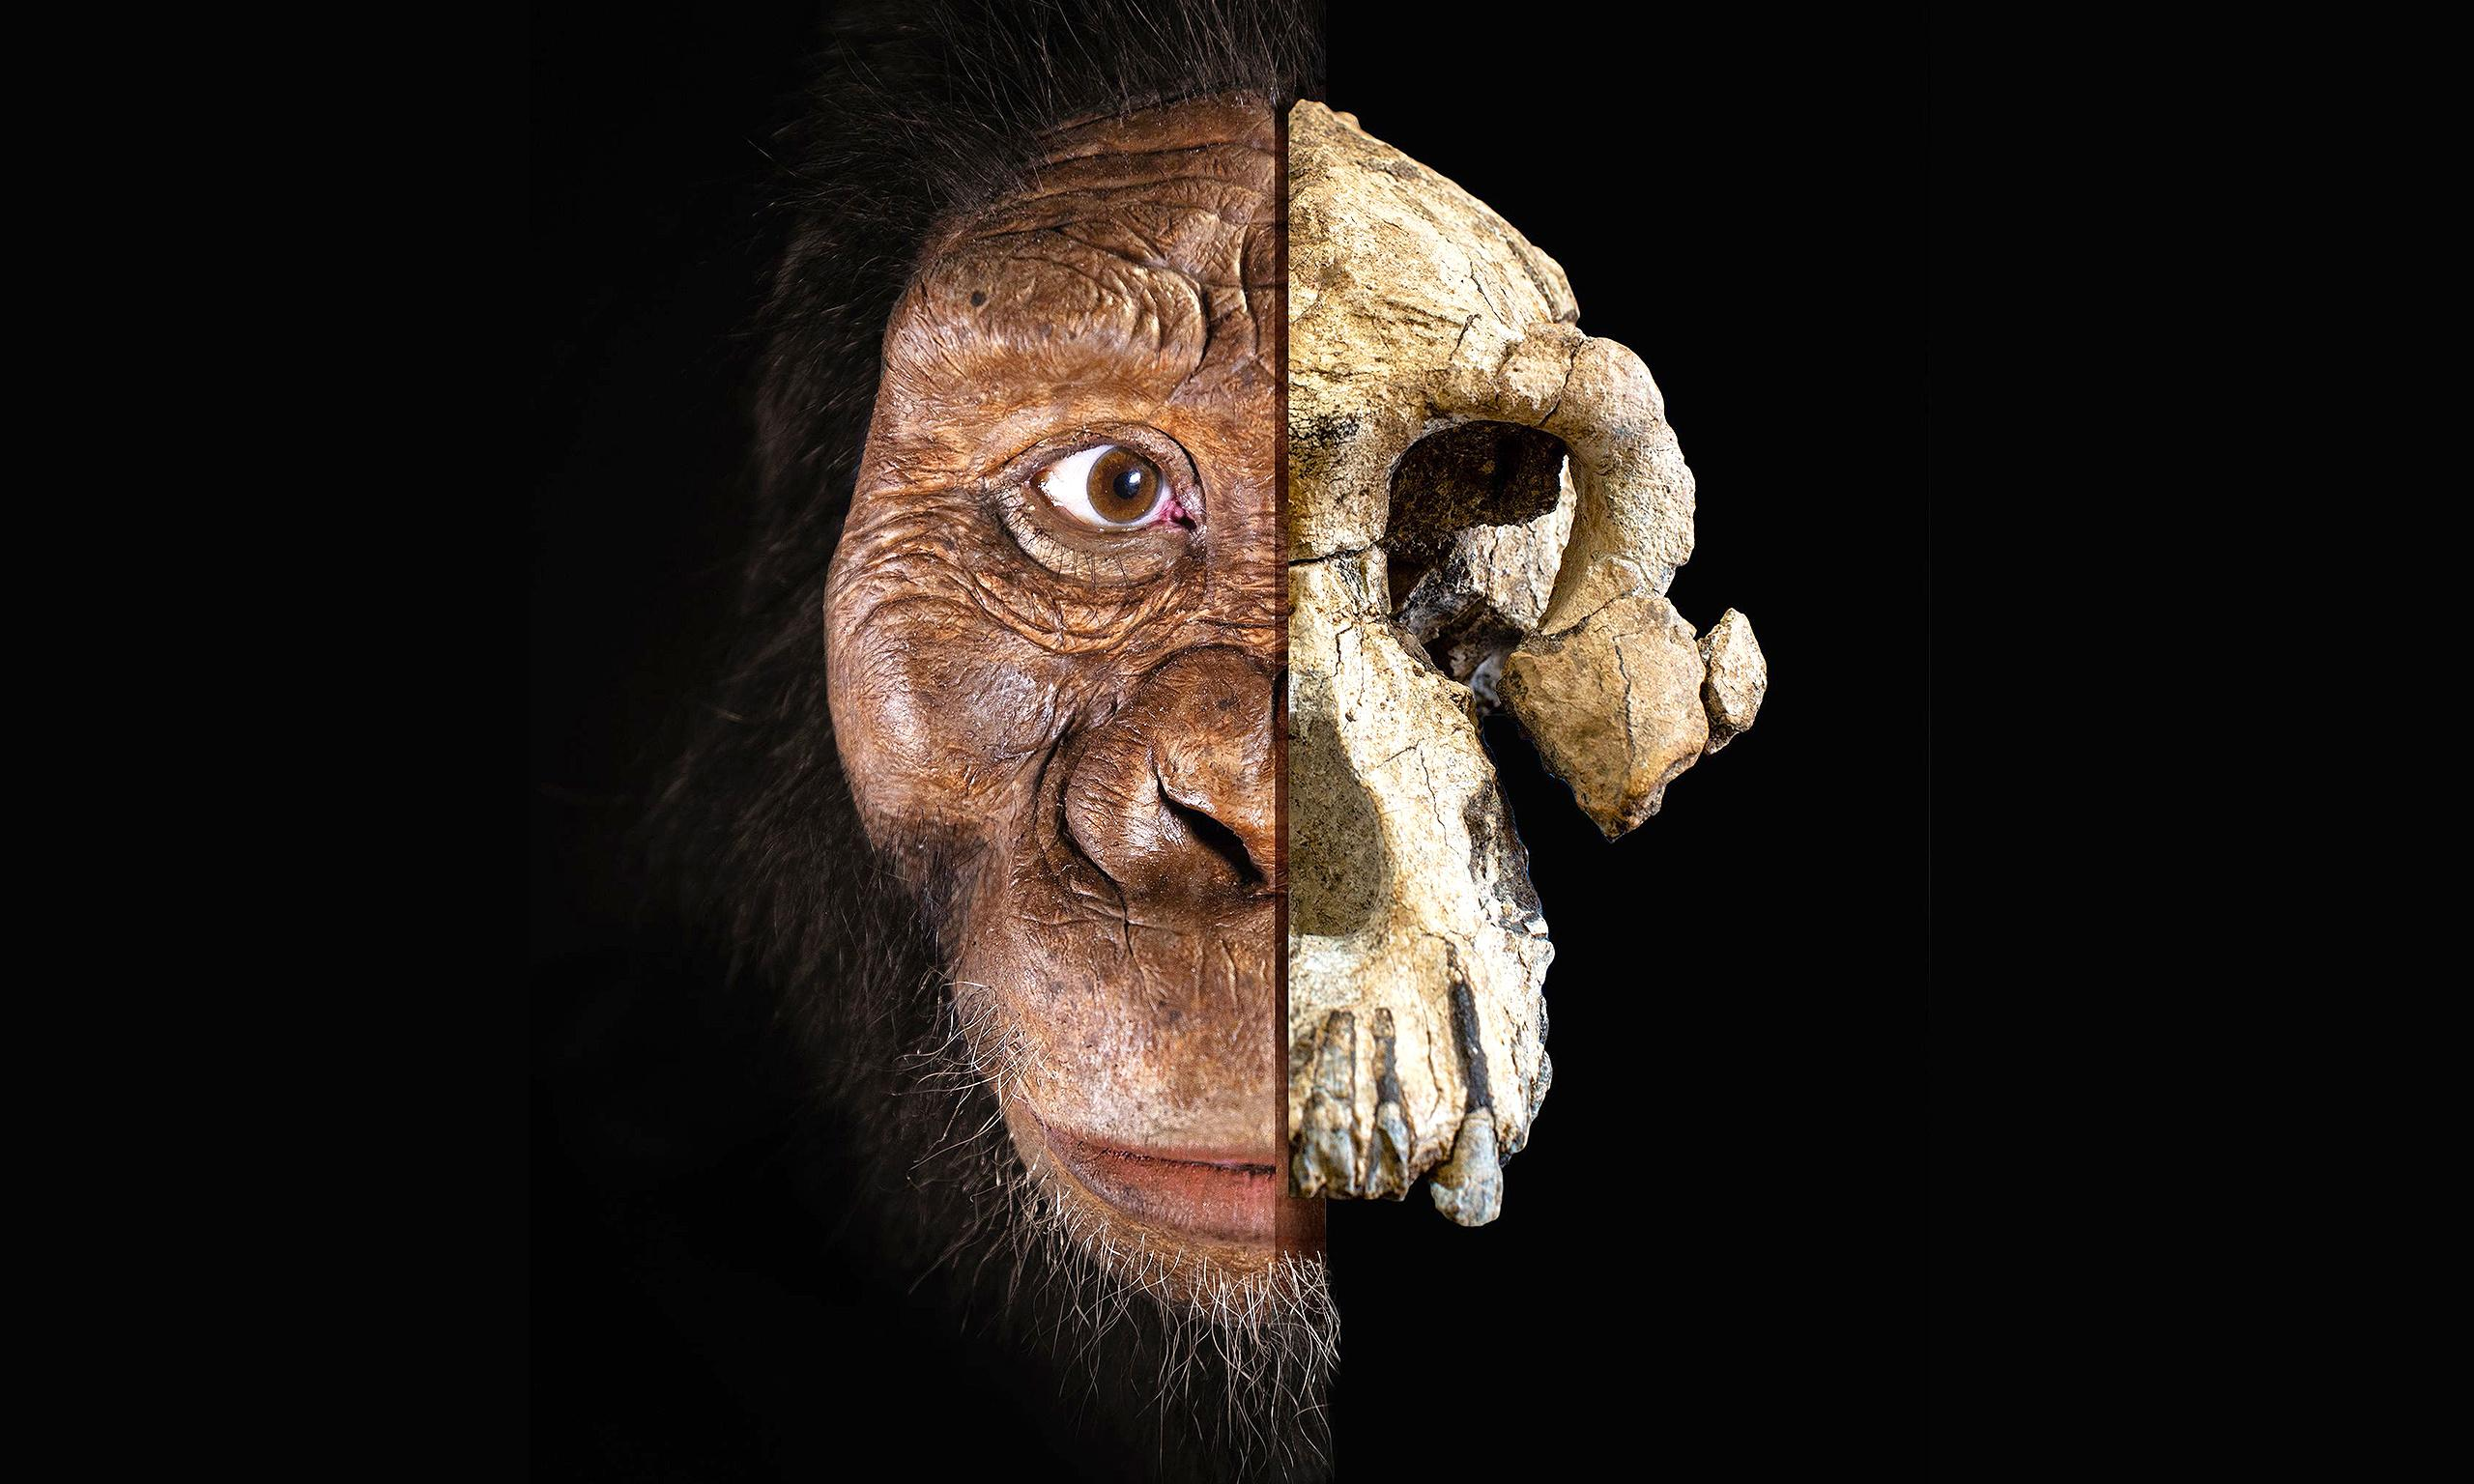 Skull of humankind's oldest-known ancestor discovered